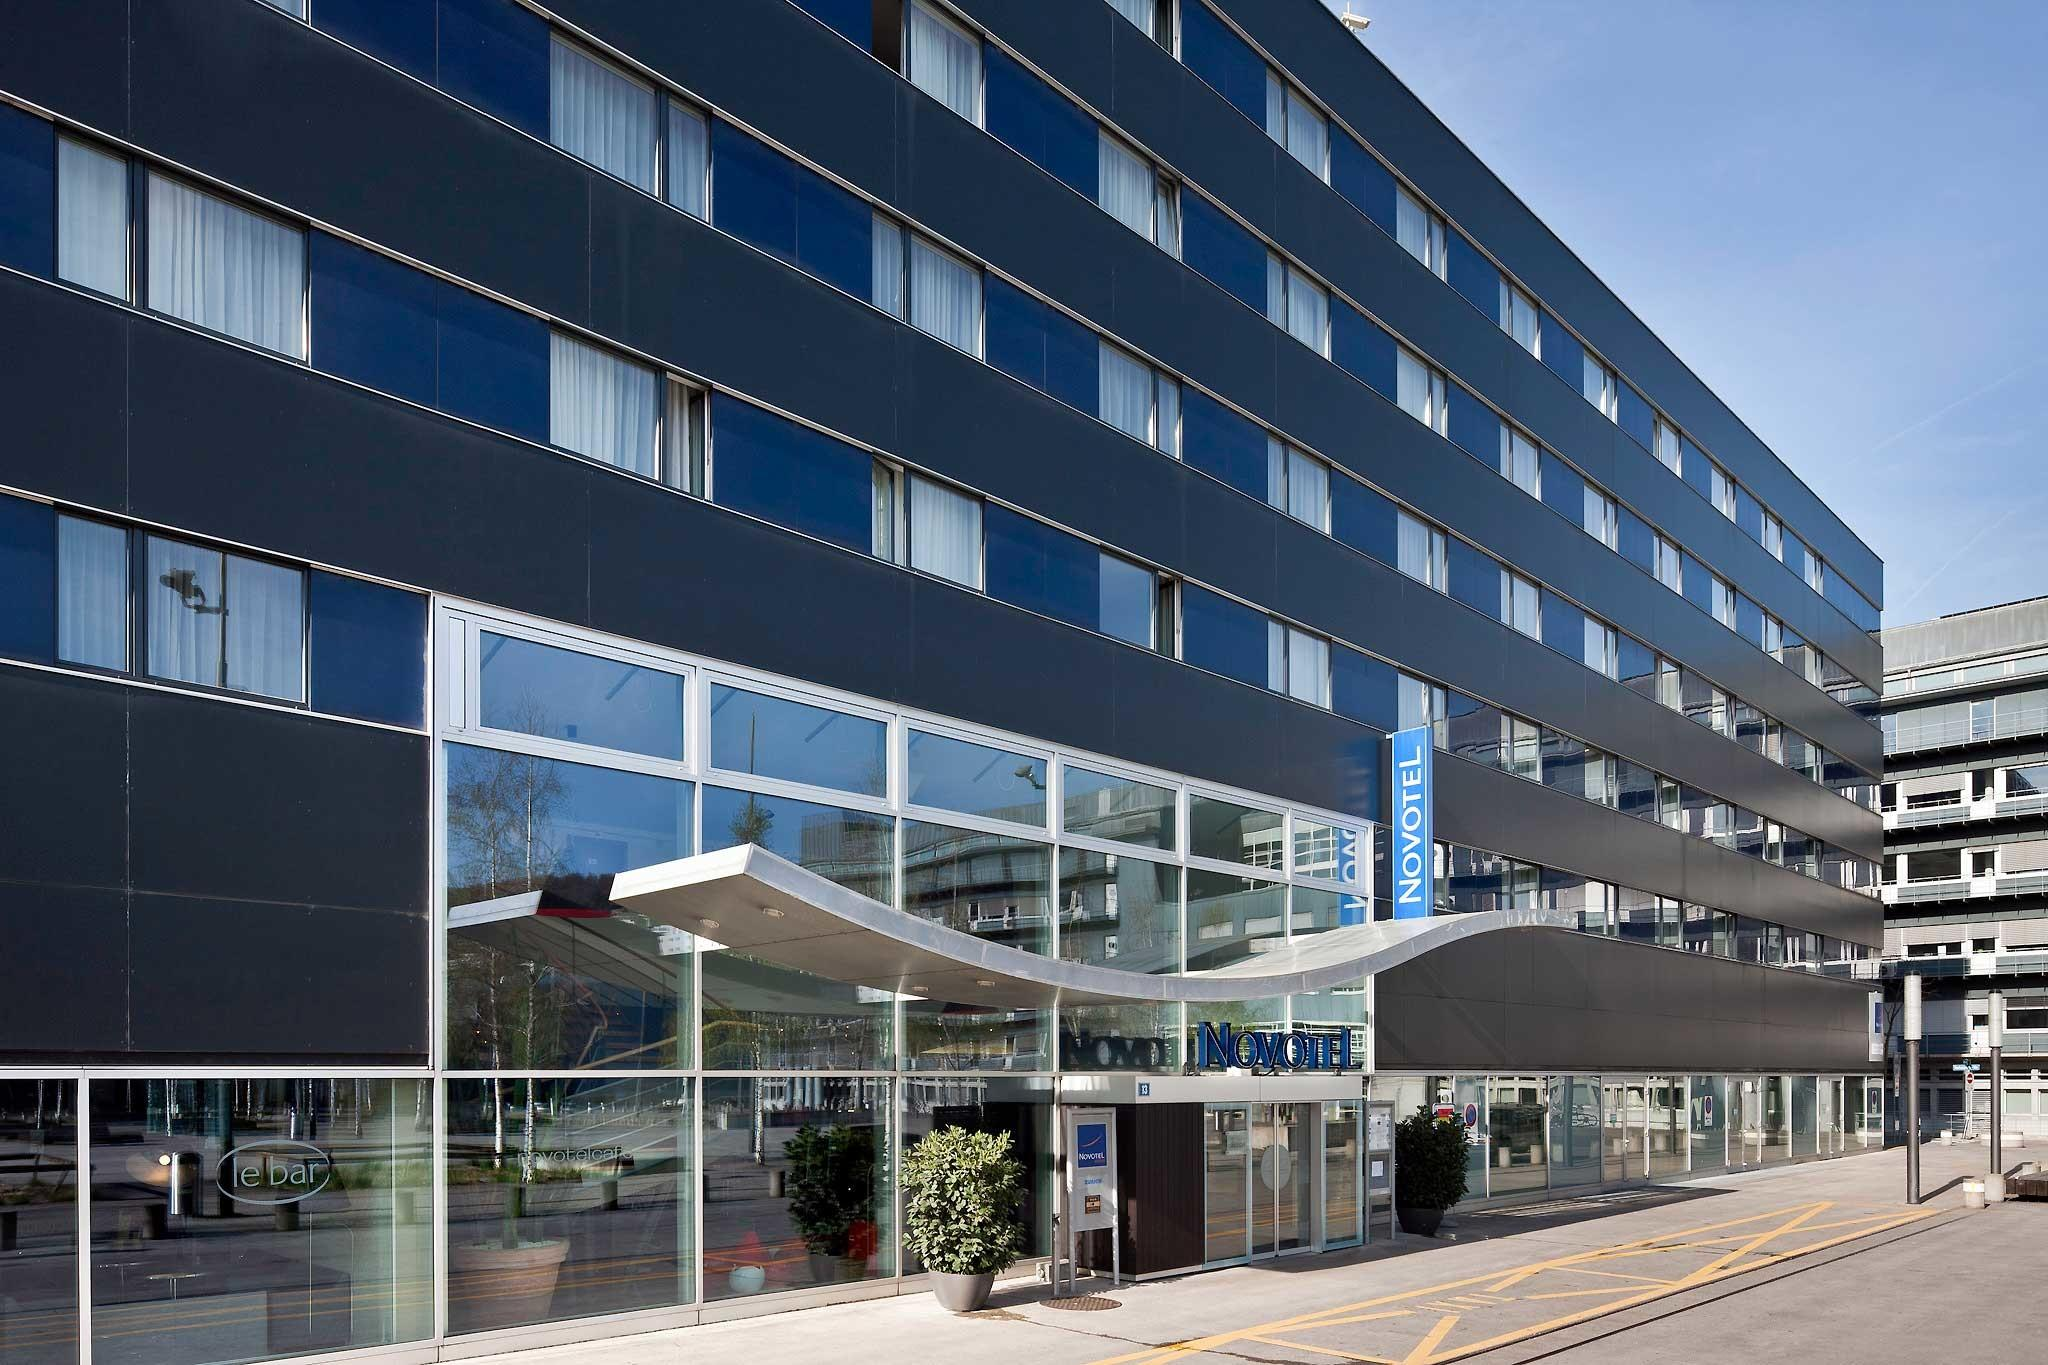 Hotel Zurich Novotel City West